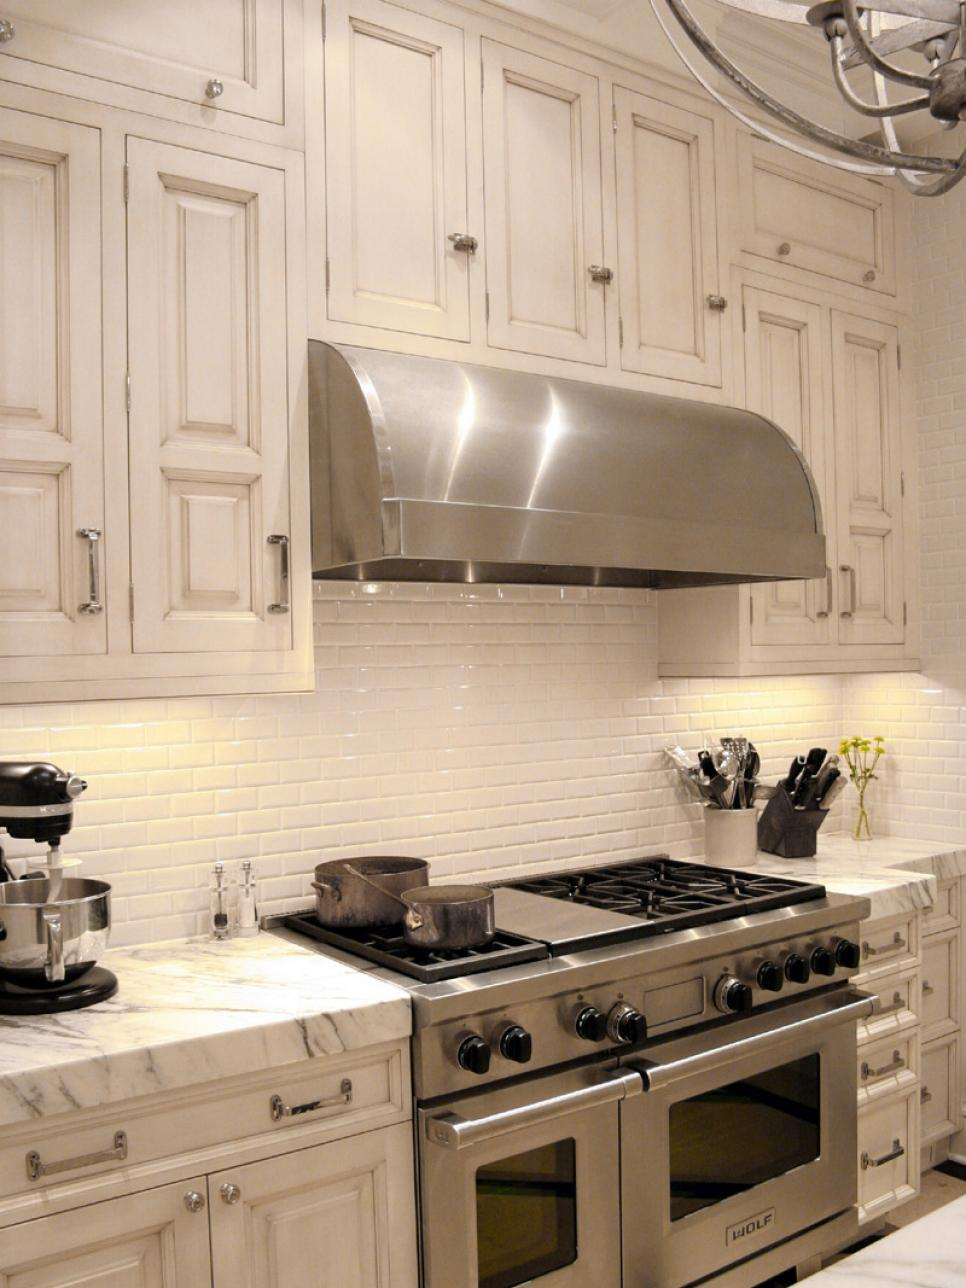 Large Tile Kitchen Backsplash Backsplash Ideas Inspirations Hgtv